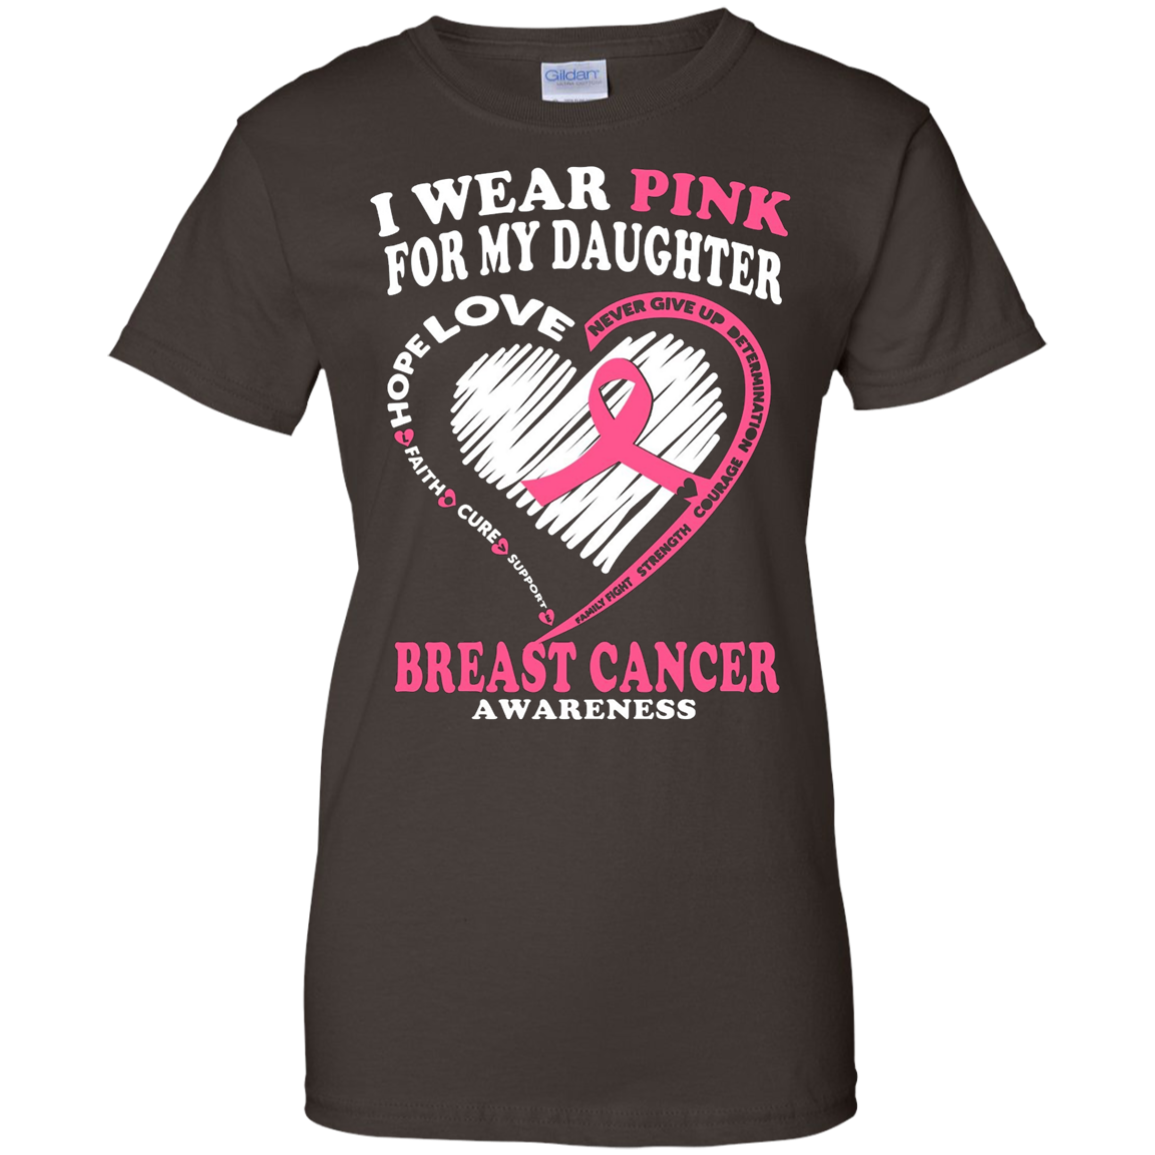 Breast Cancer Awareness Shirt - I Wear Pink For My Daughter